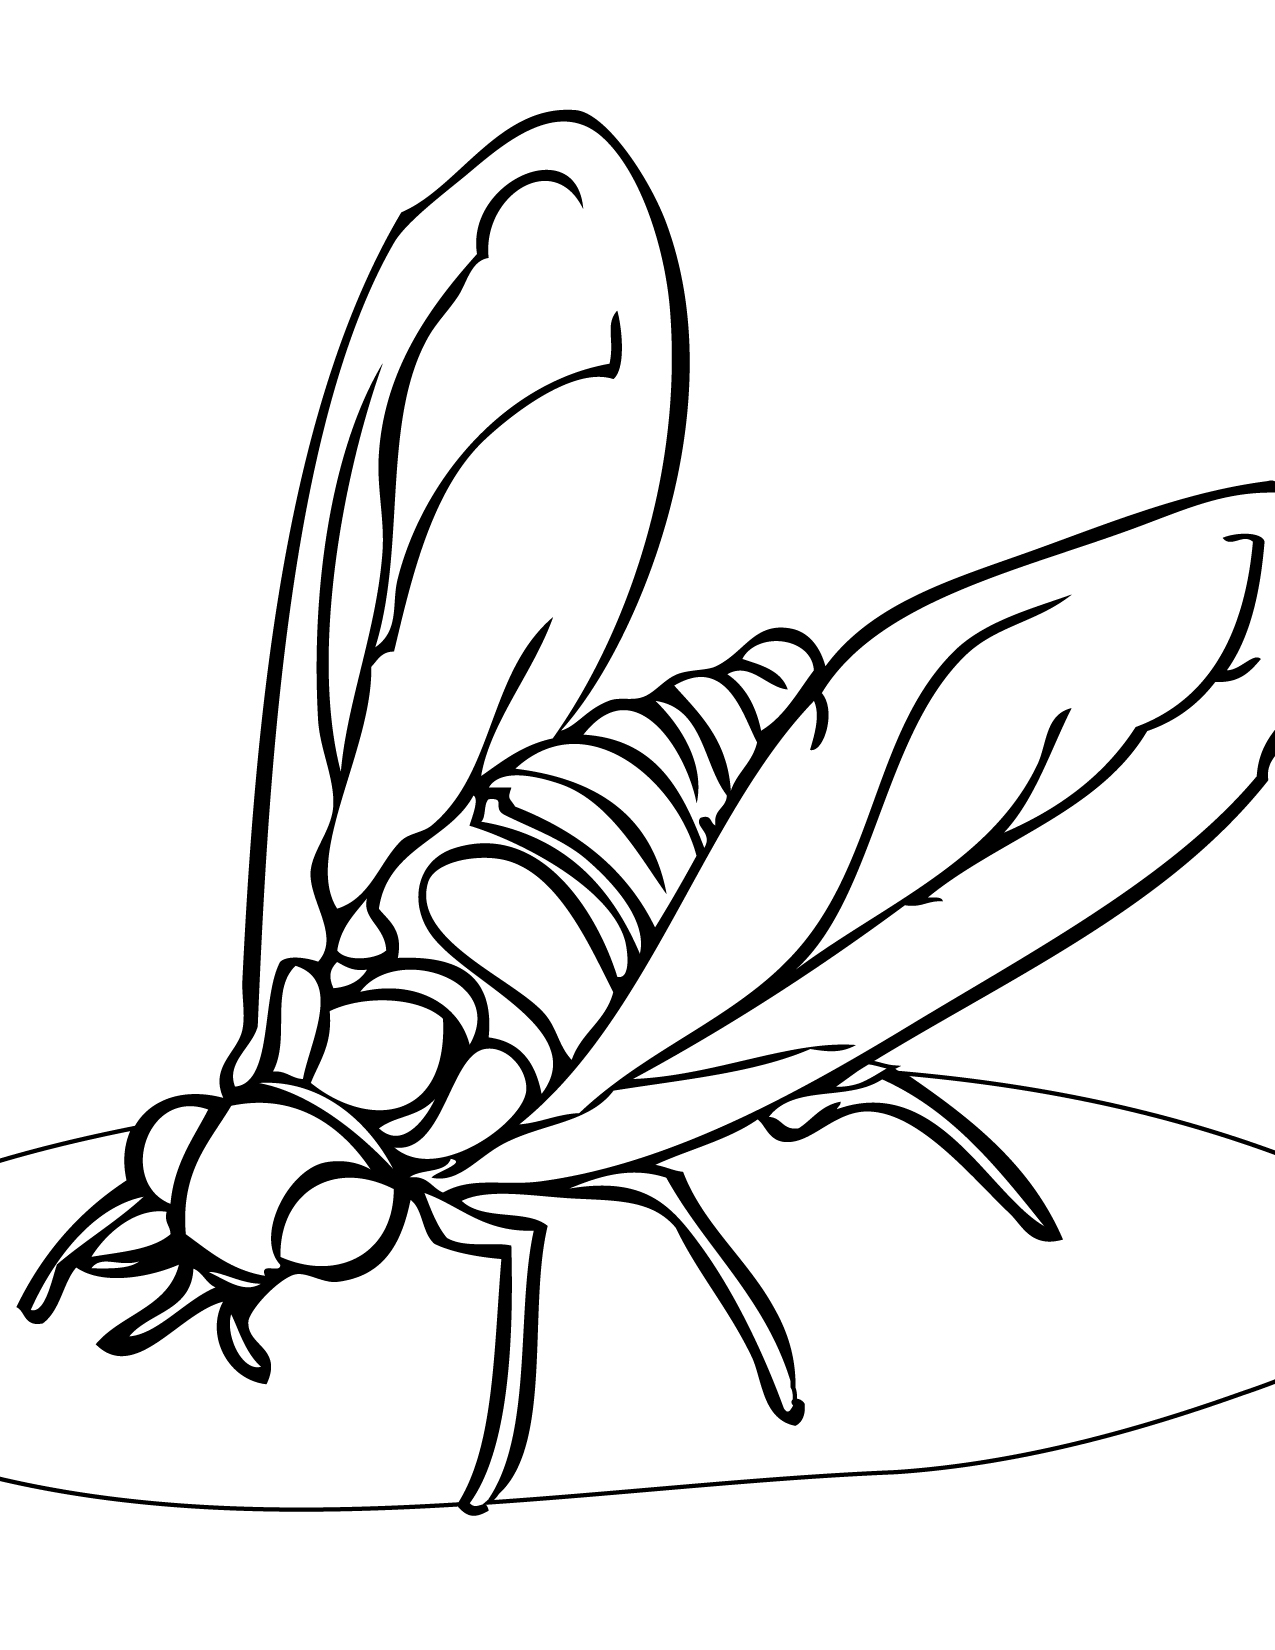 Hoverfly coloring #10, Download drawings